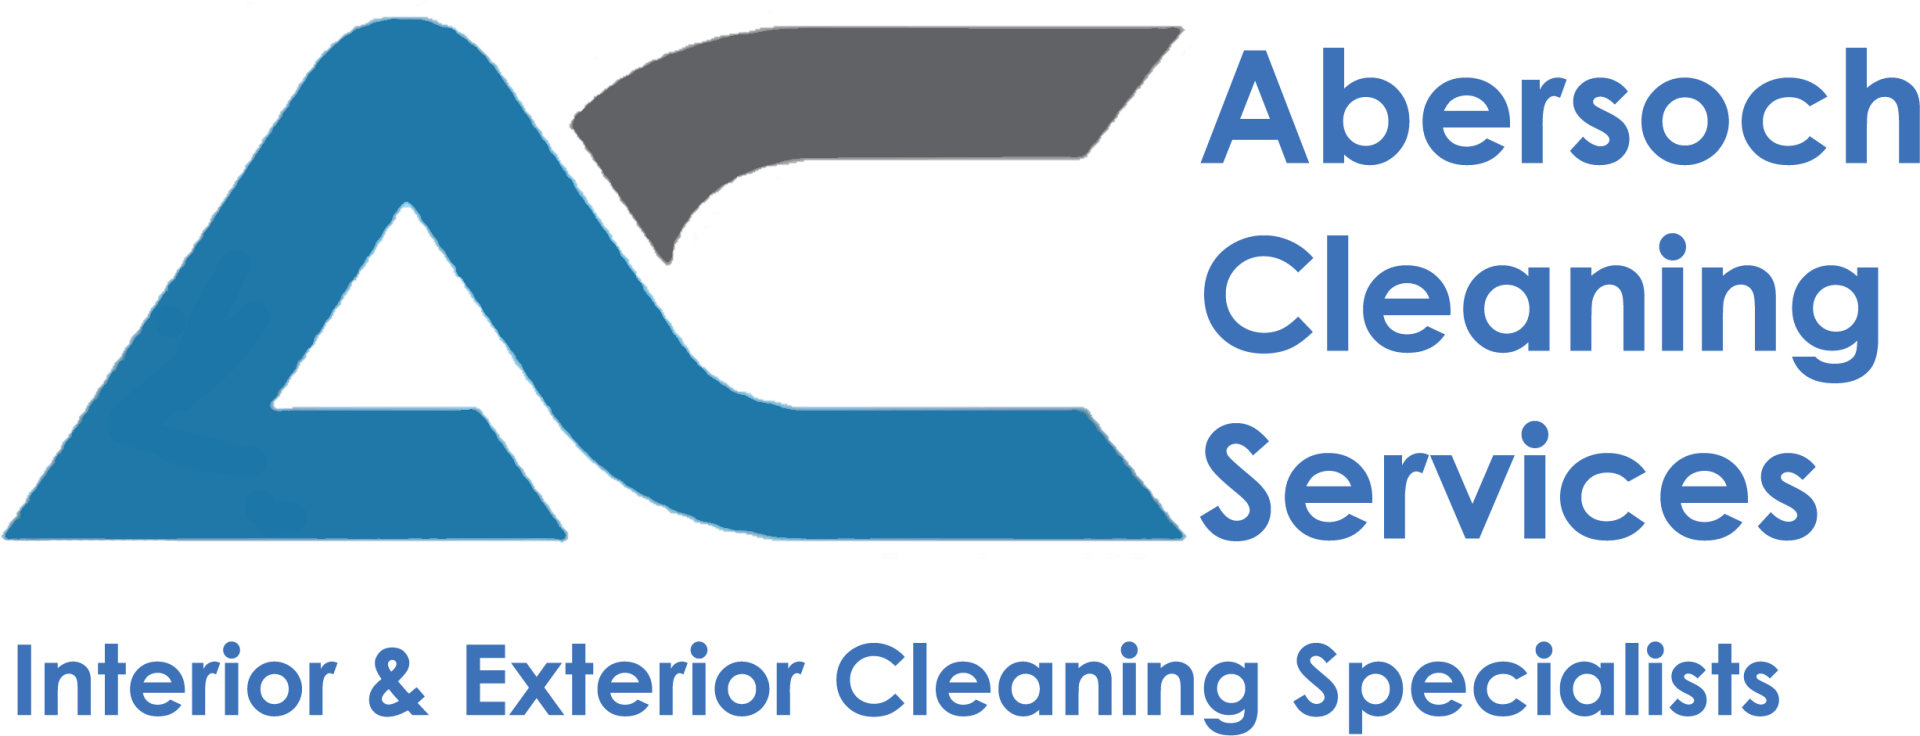 Abersoch Cleaning Services